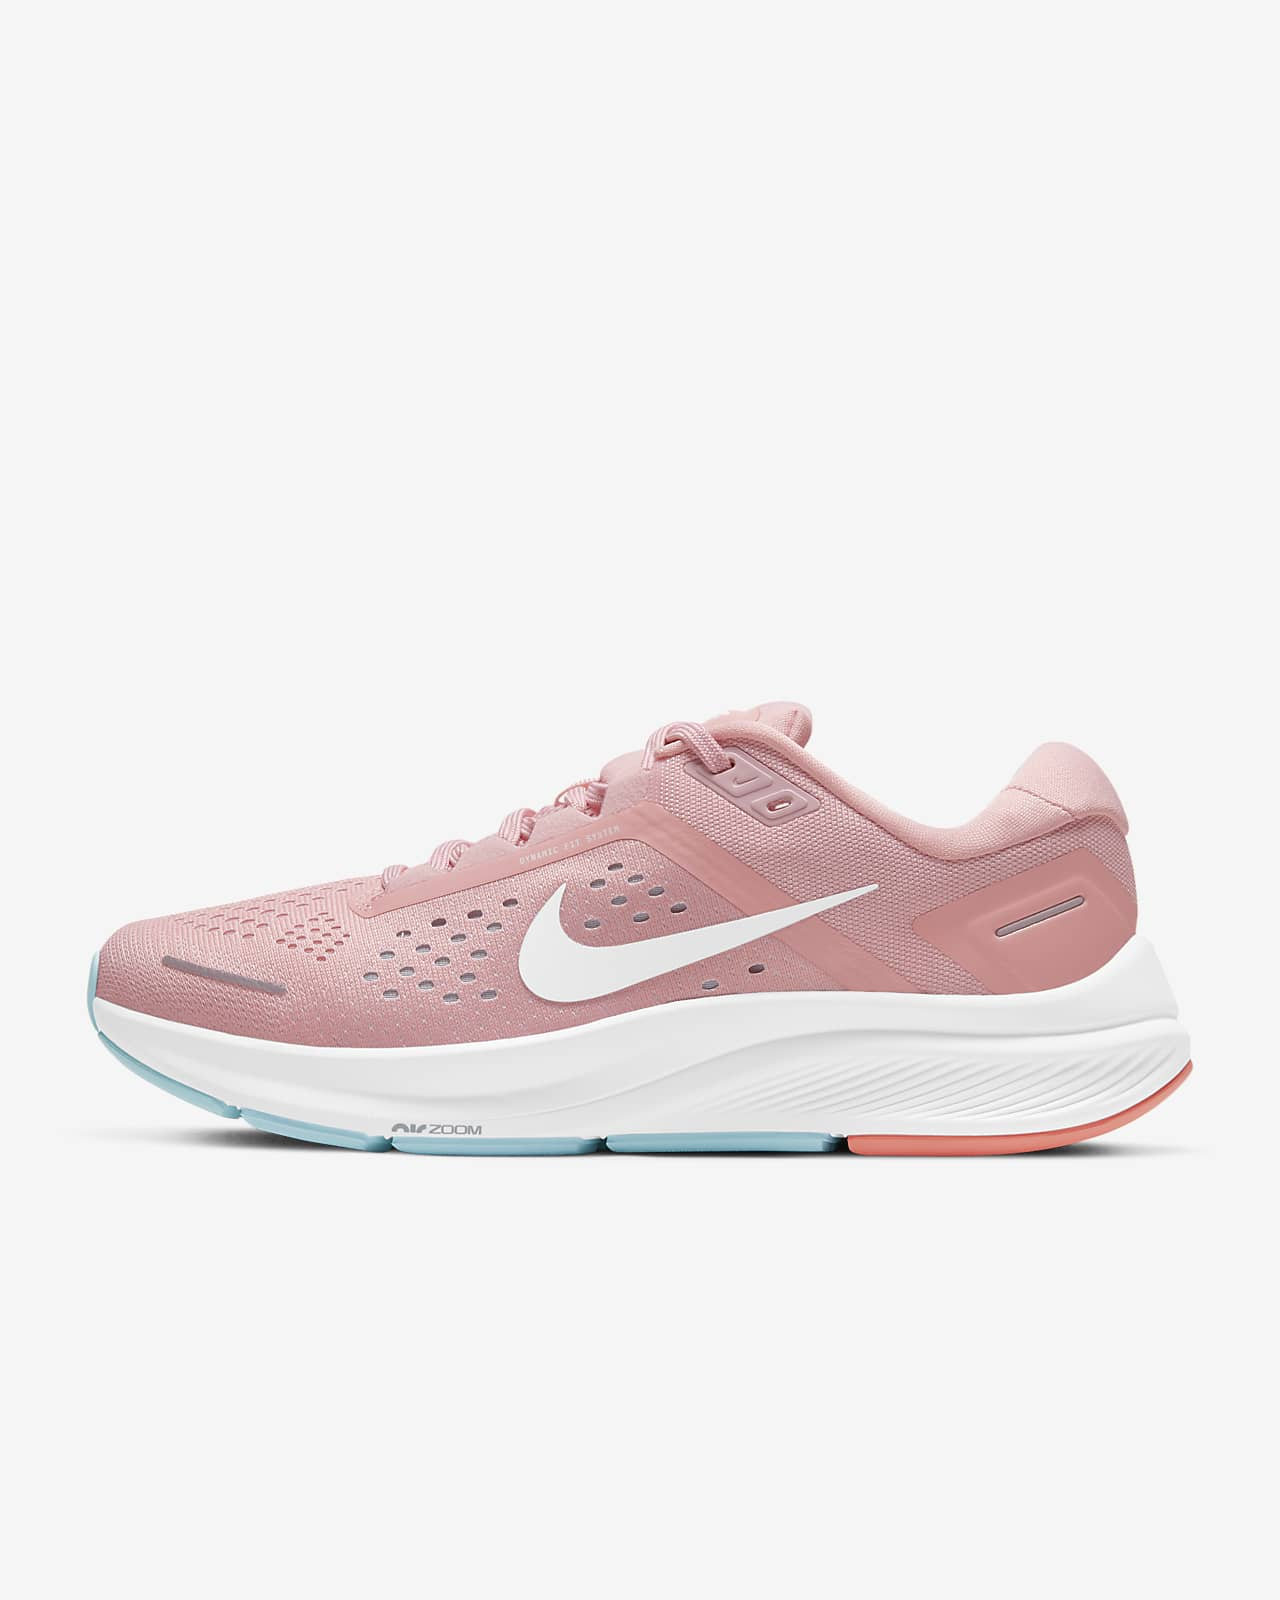 Nike Air Zoom Structure 23 Women's Running Shoe